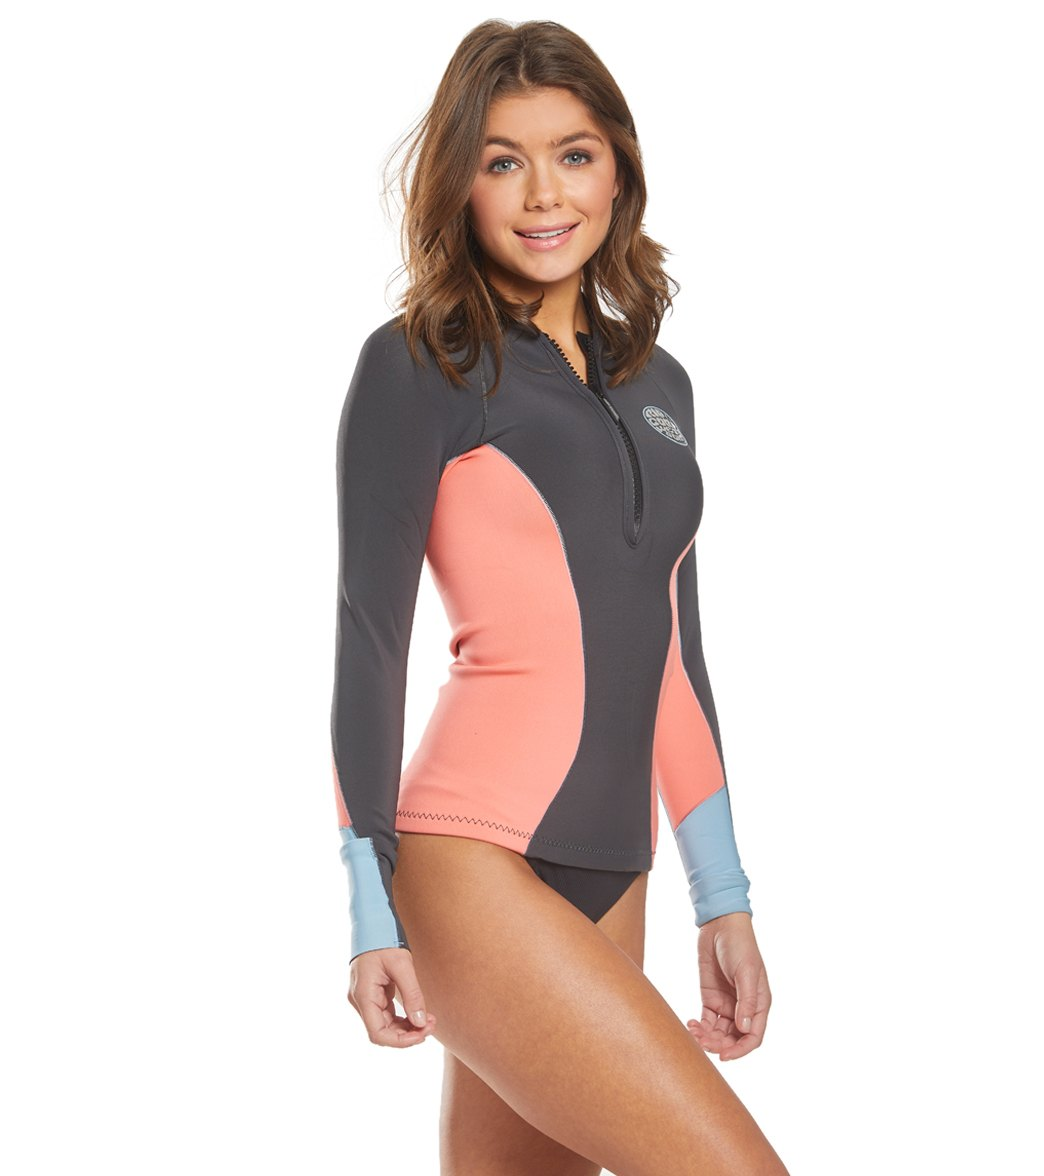 45849125f6ab1 Rip Curl Women s 1mm G-Bomb Long Sleeve Front Zip Wetsuit Jacket at  SwimOutlet.com - Free Shipping